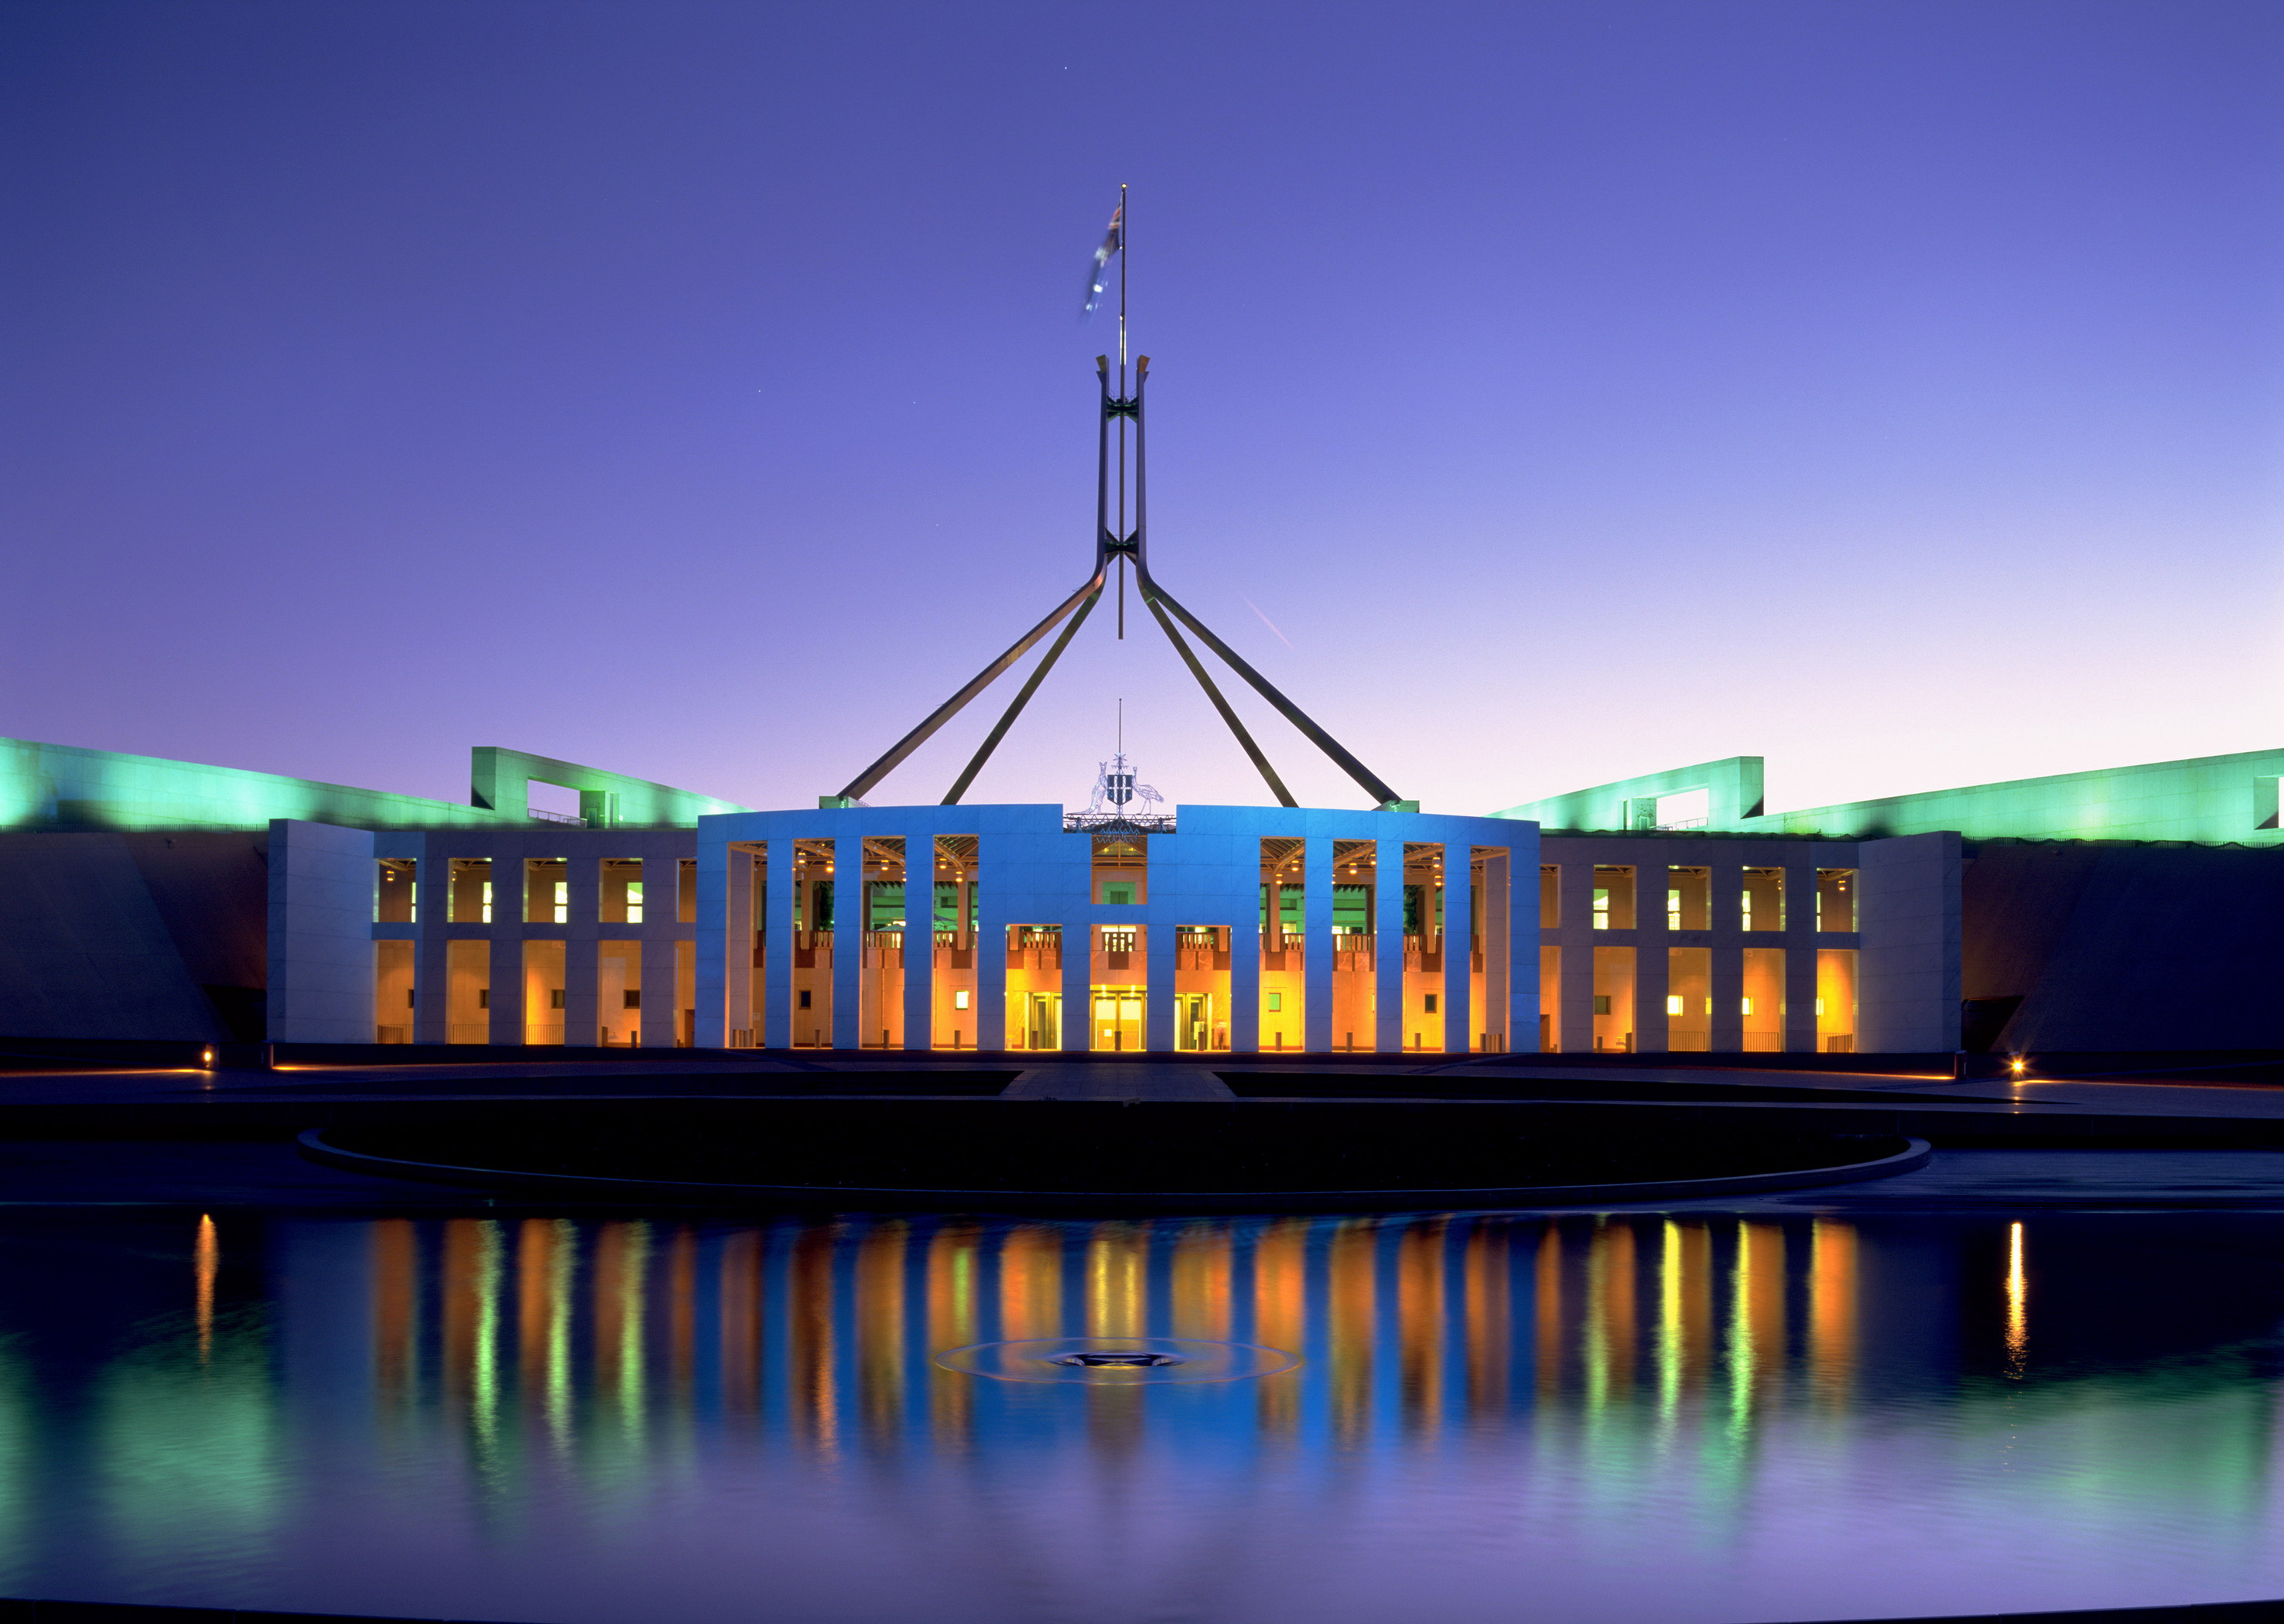 Parliament House at night looking dapper.